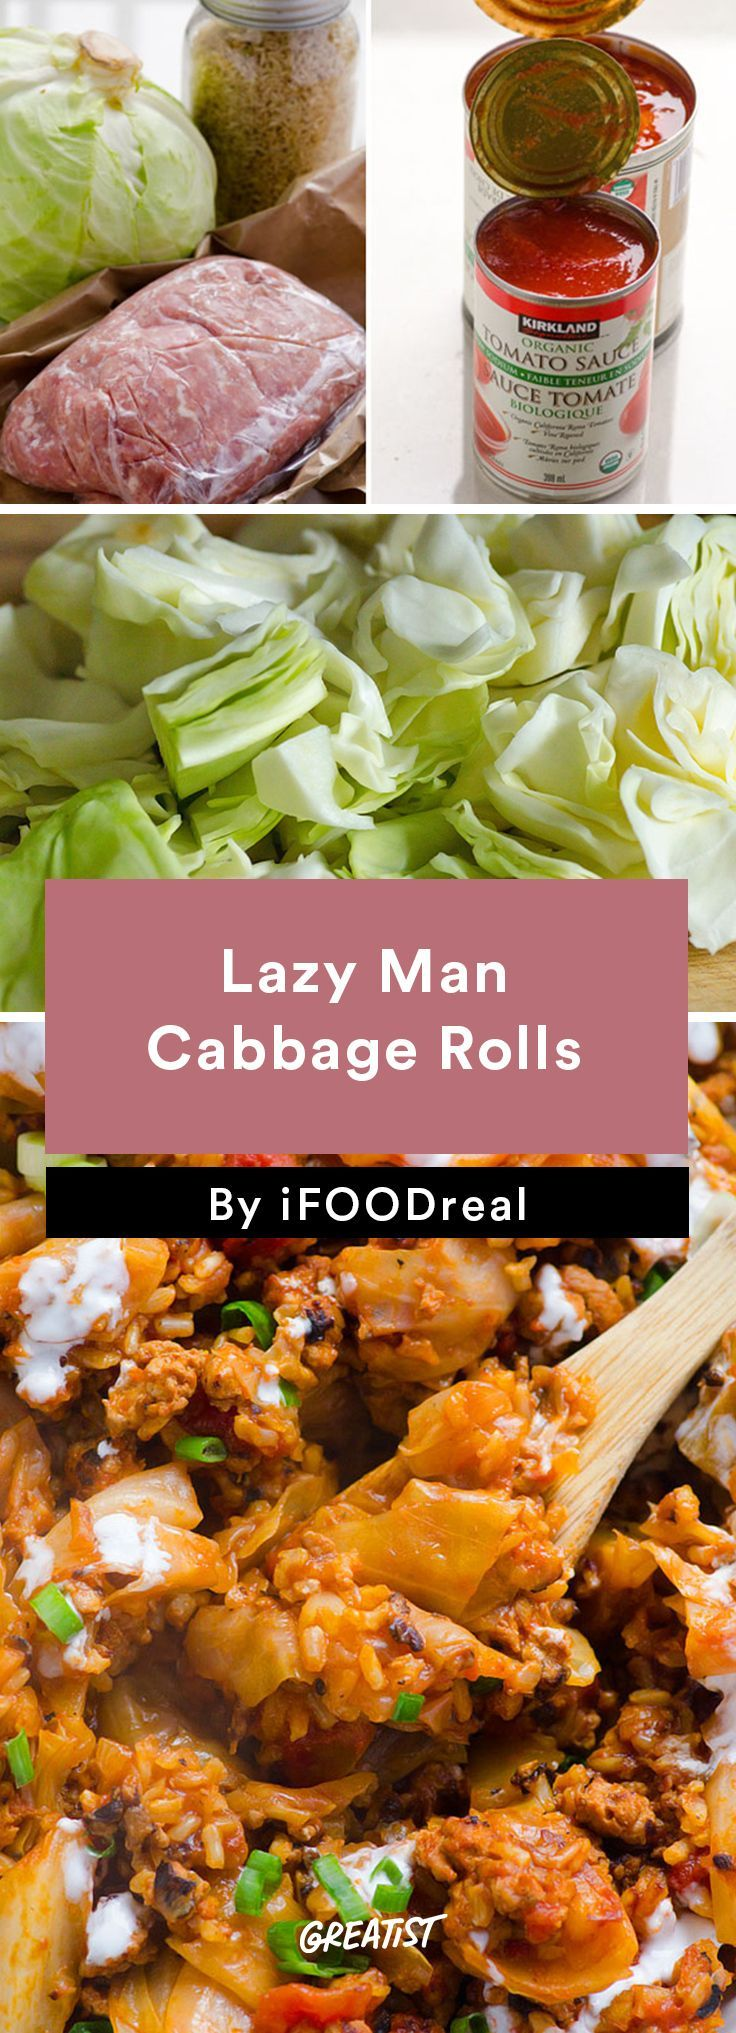 7 surprisingly easy clean eating dinners healthy dinner recipes lazy man cabbage rolls healthy dinner recipes http forumfinder Choice Image